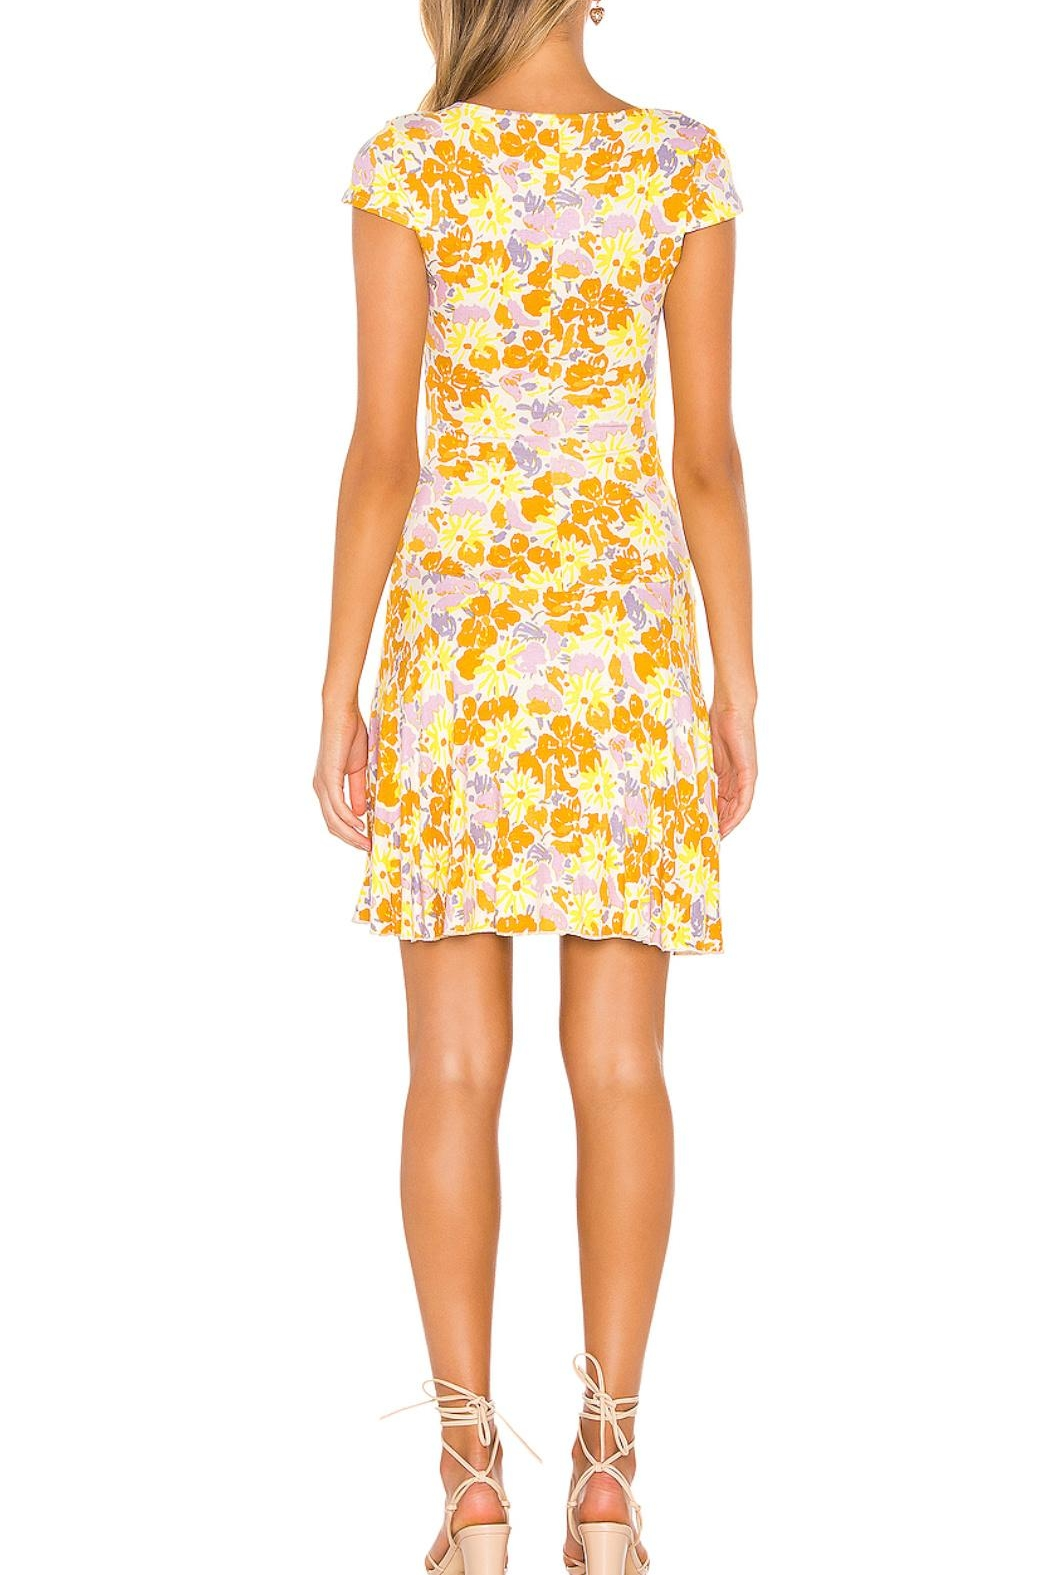 Free People Molly Mini Dress - Side Cropped Image